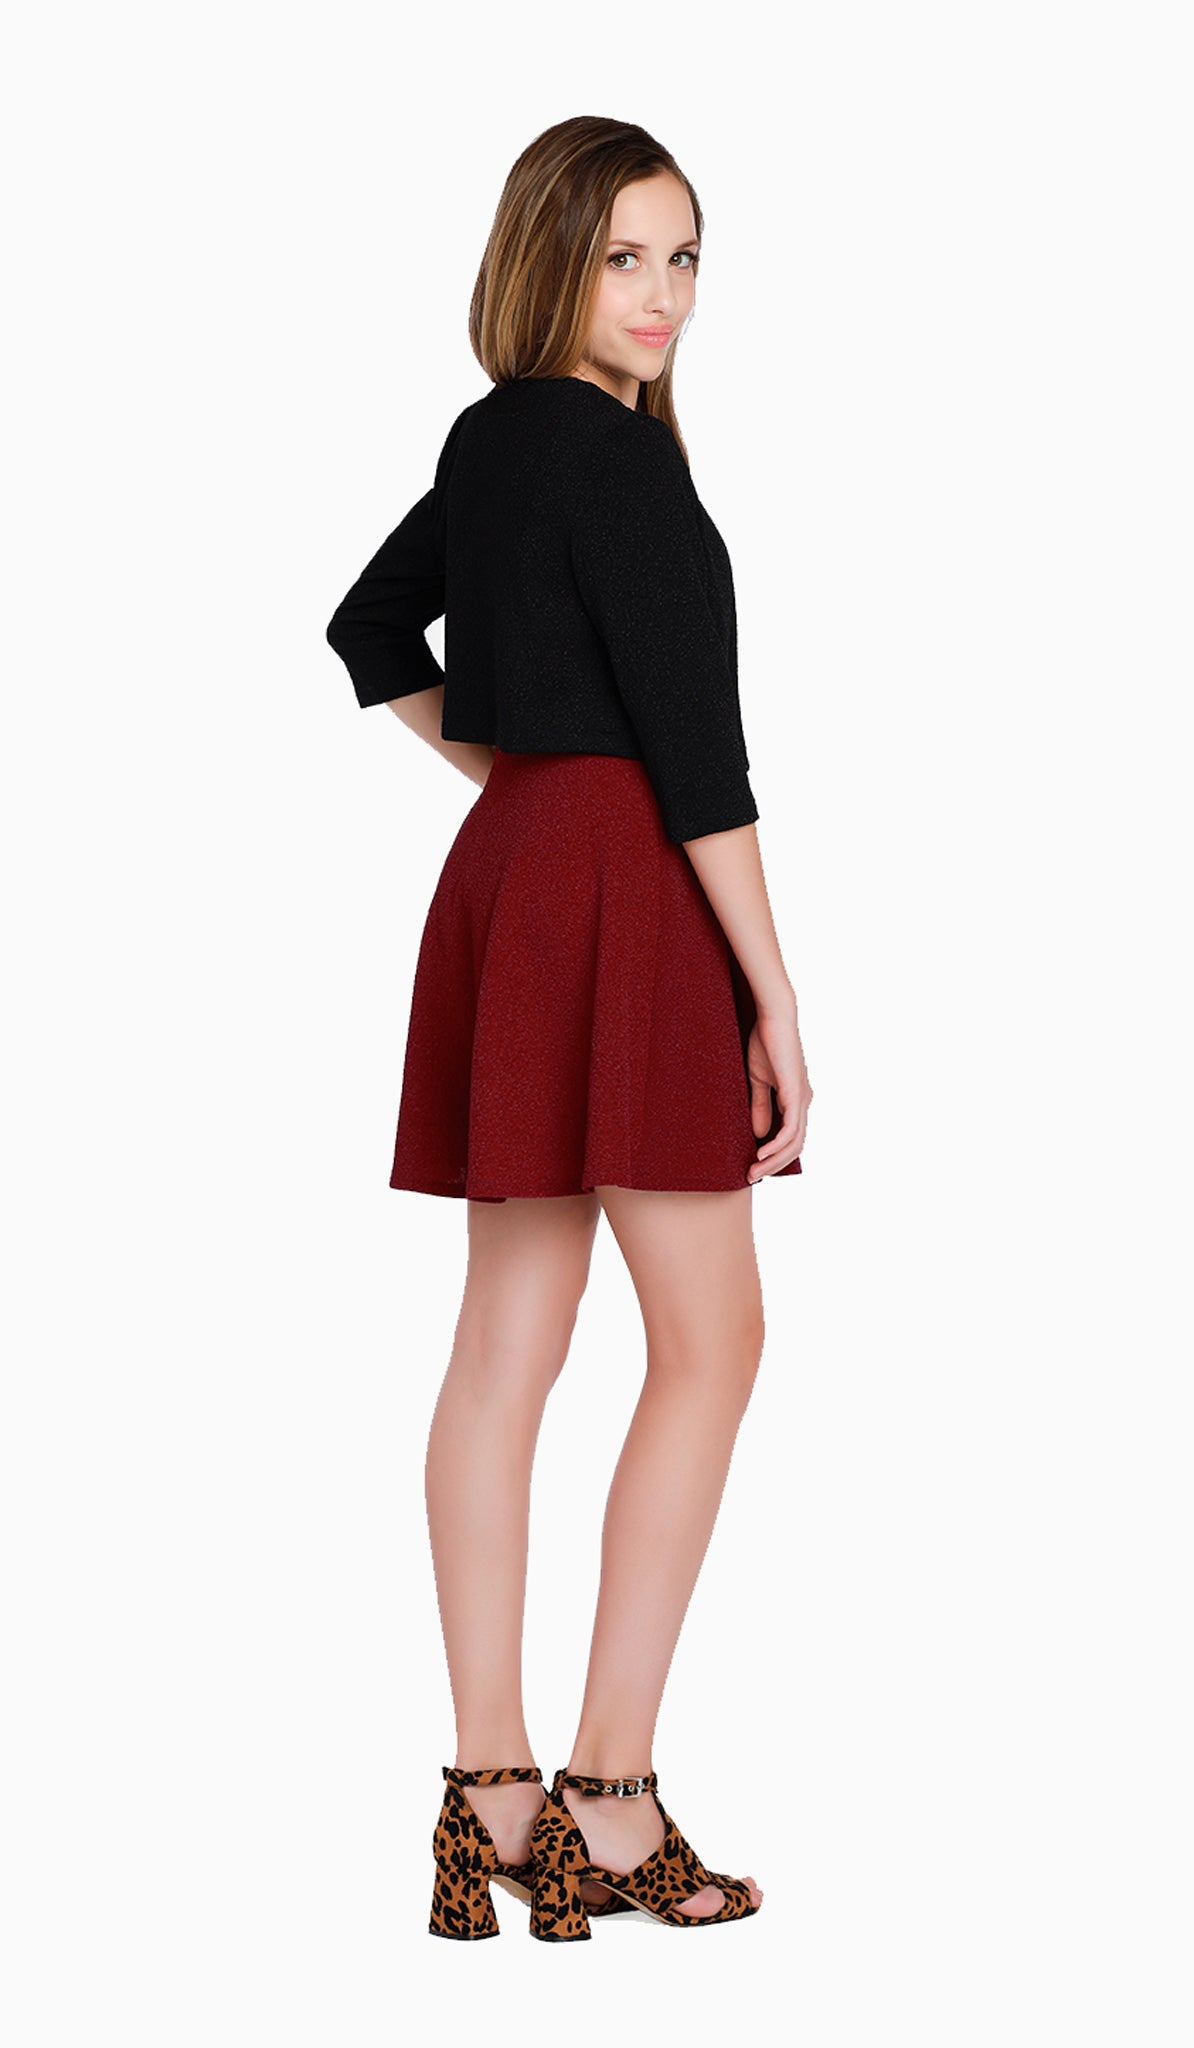 Sally Miller Main Event Jacket | Black stretch-knit bouclé jacket |  | Luxury tween dresses & juniors dresses for all occasions and events